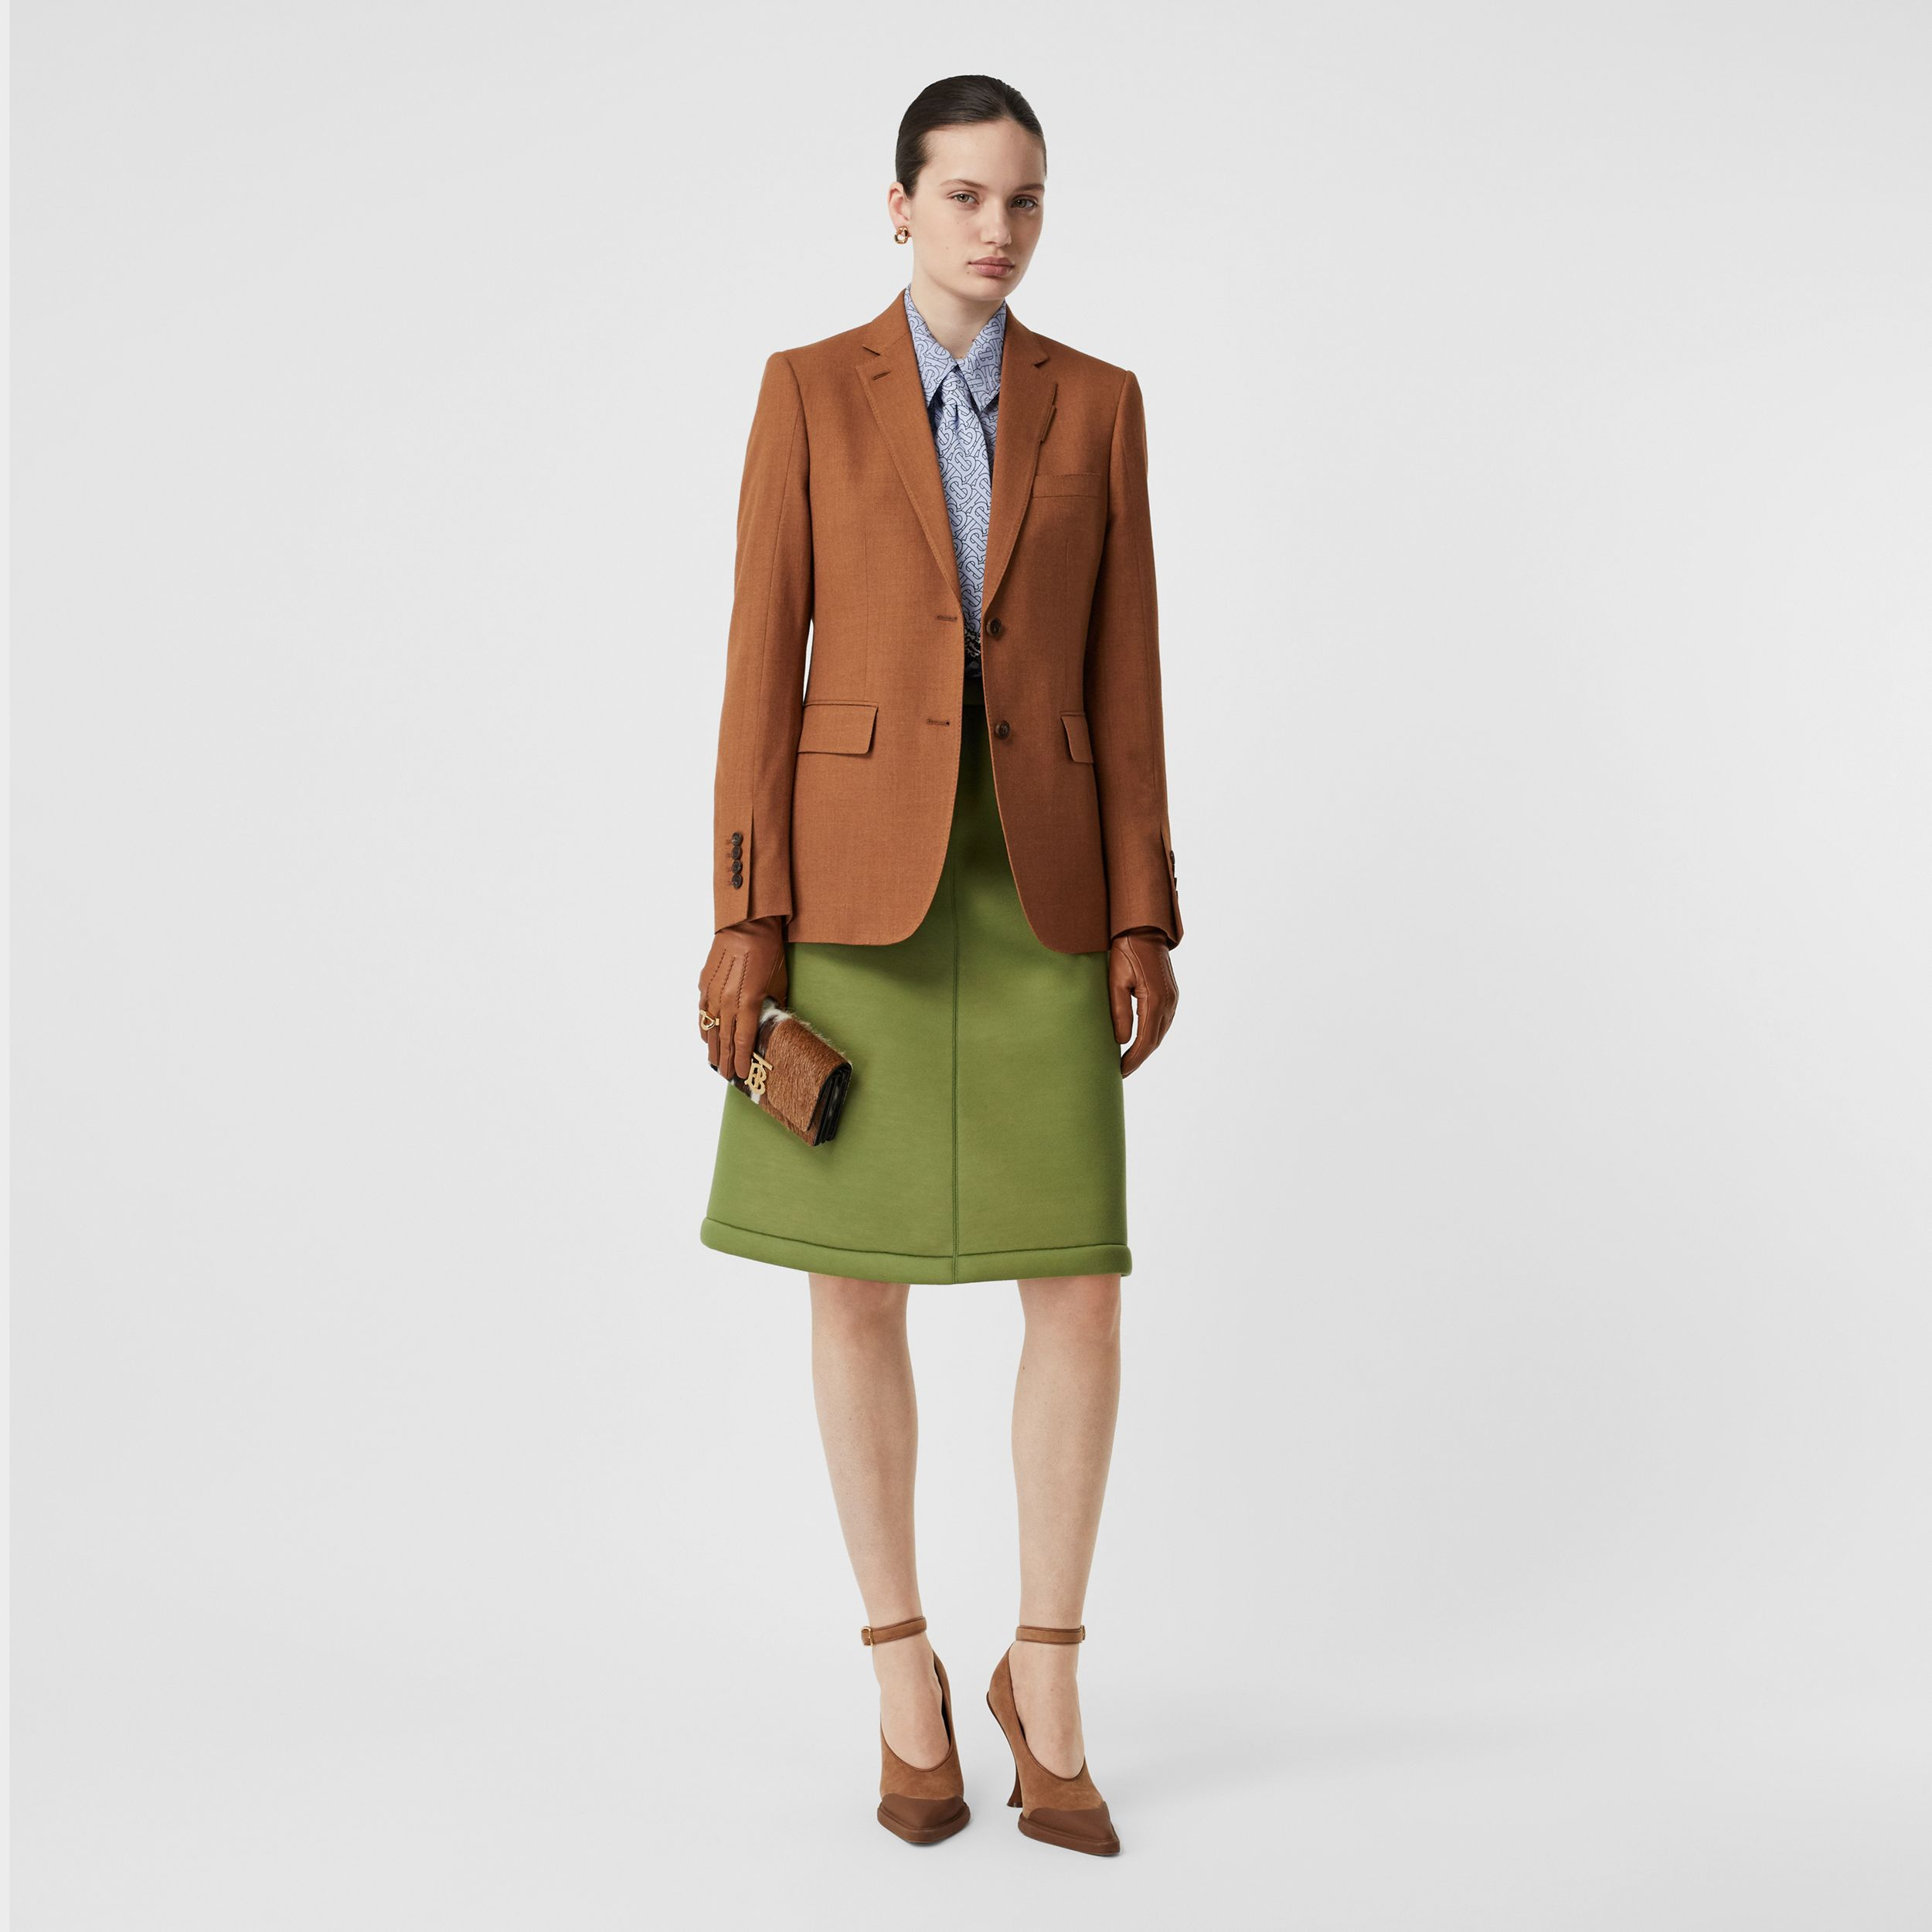 Wool, Silk and Cotton Blazer in Rust - Women | Burberry - 1